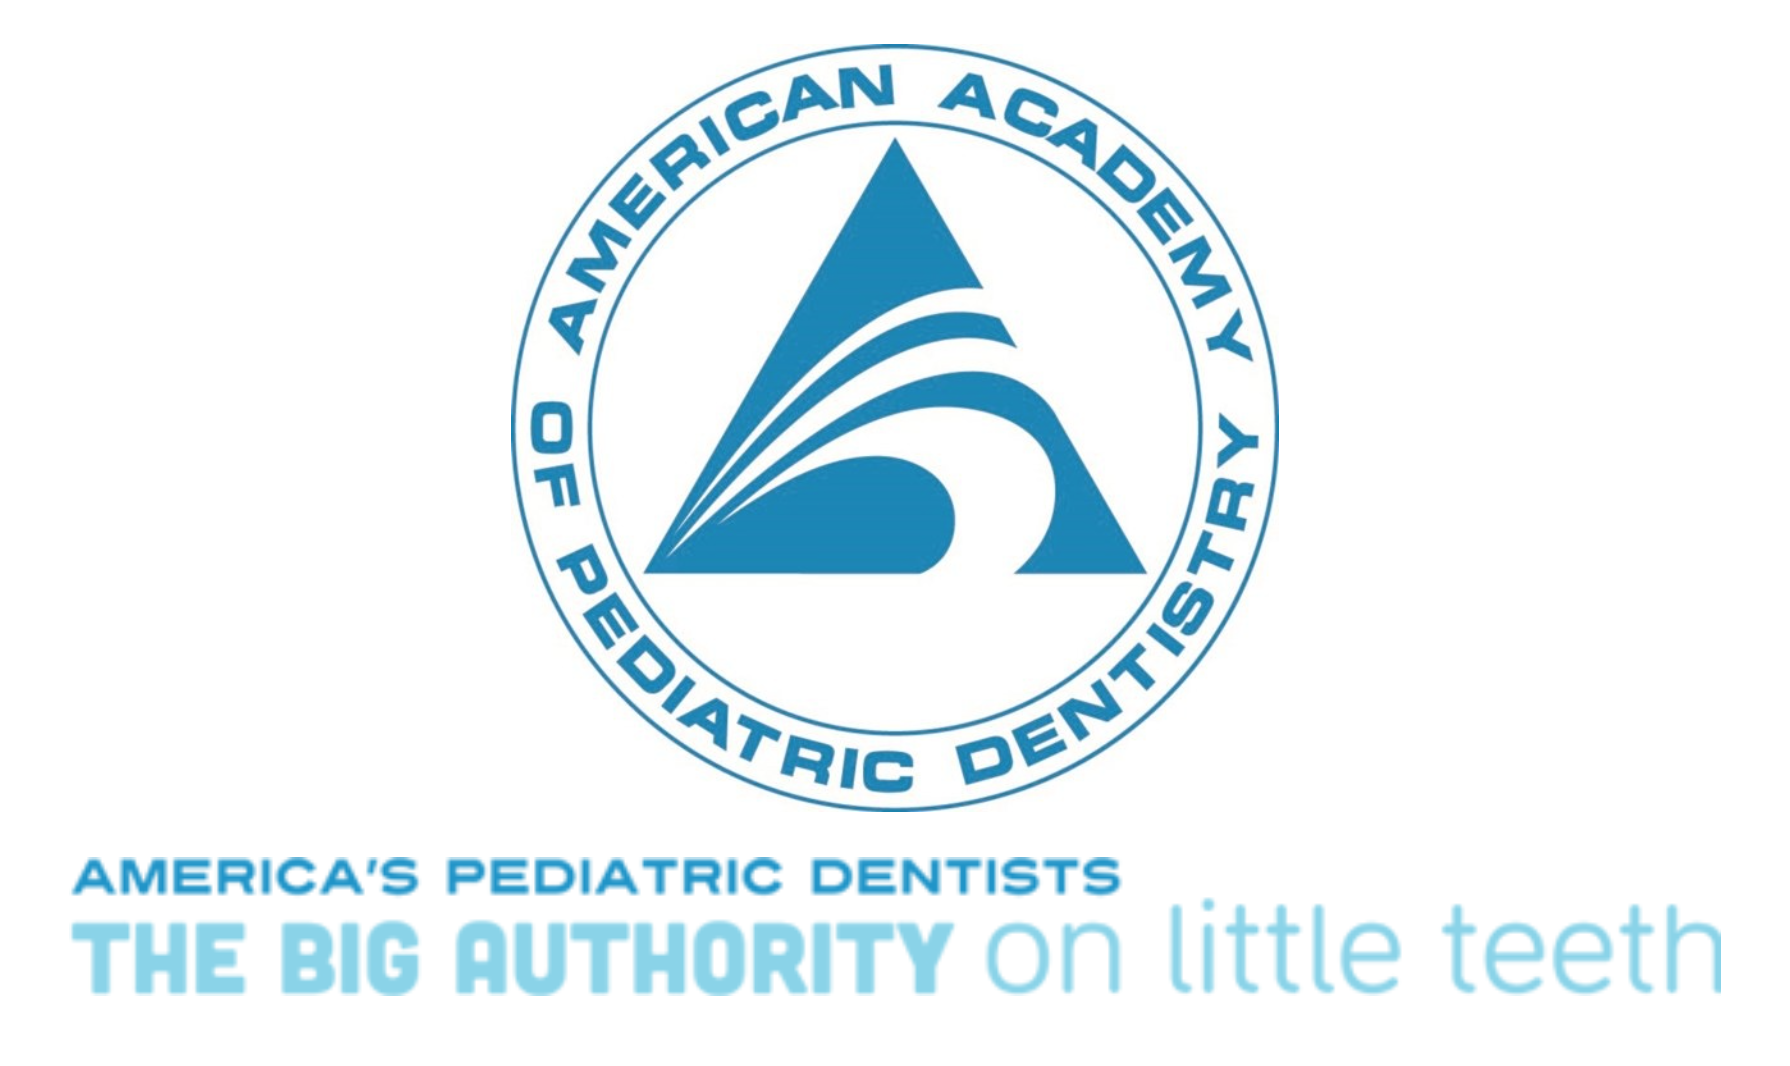 the big authority on little teeth